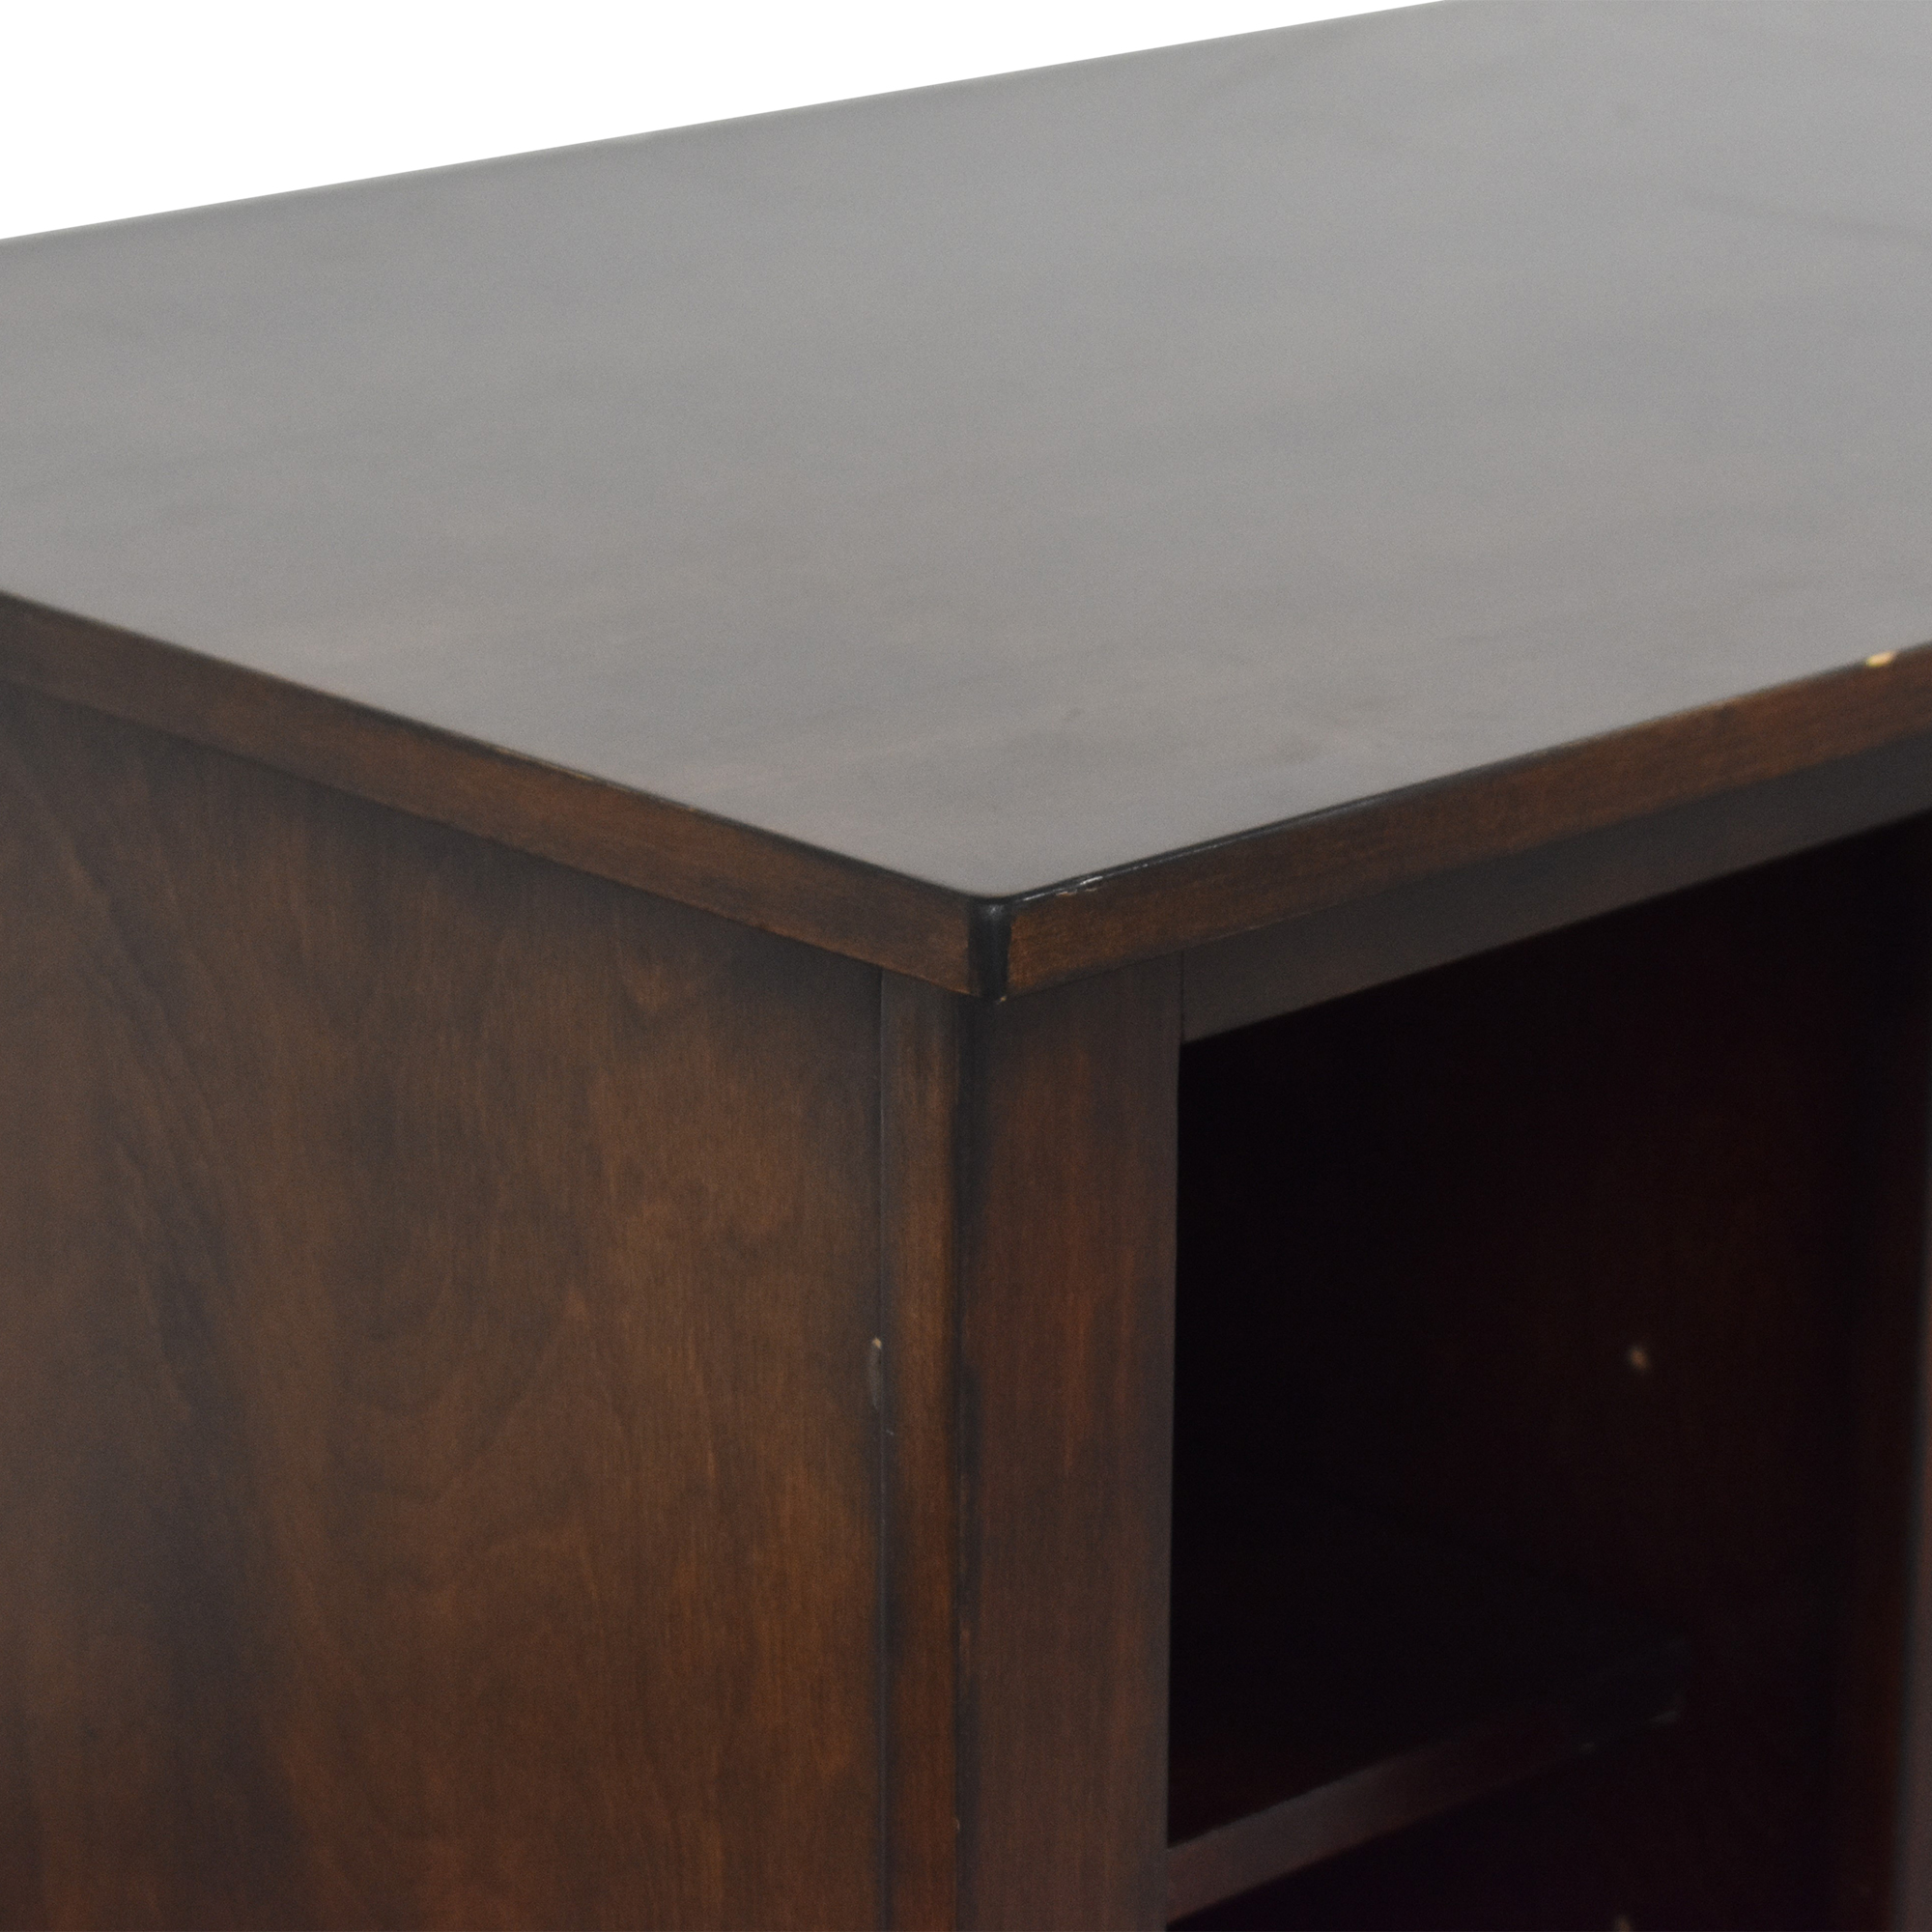 Ashley Furniture Signature Design Media Console sale